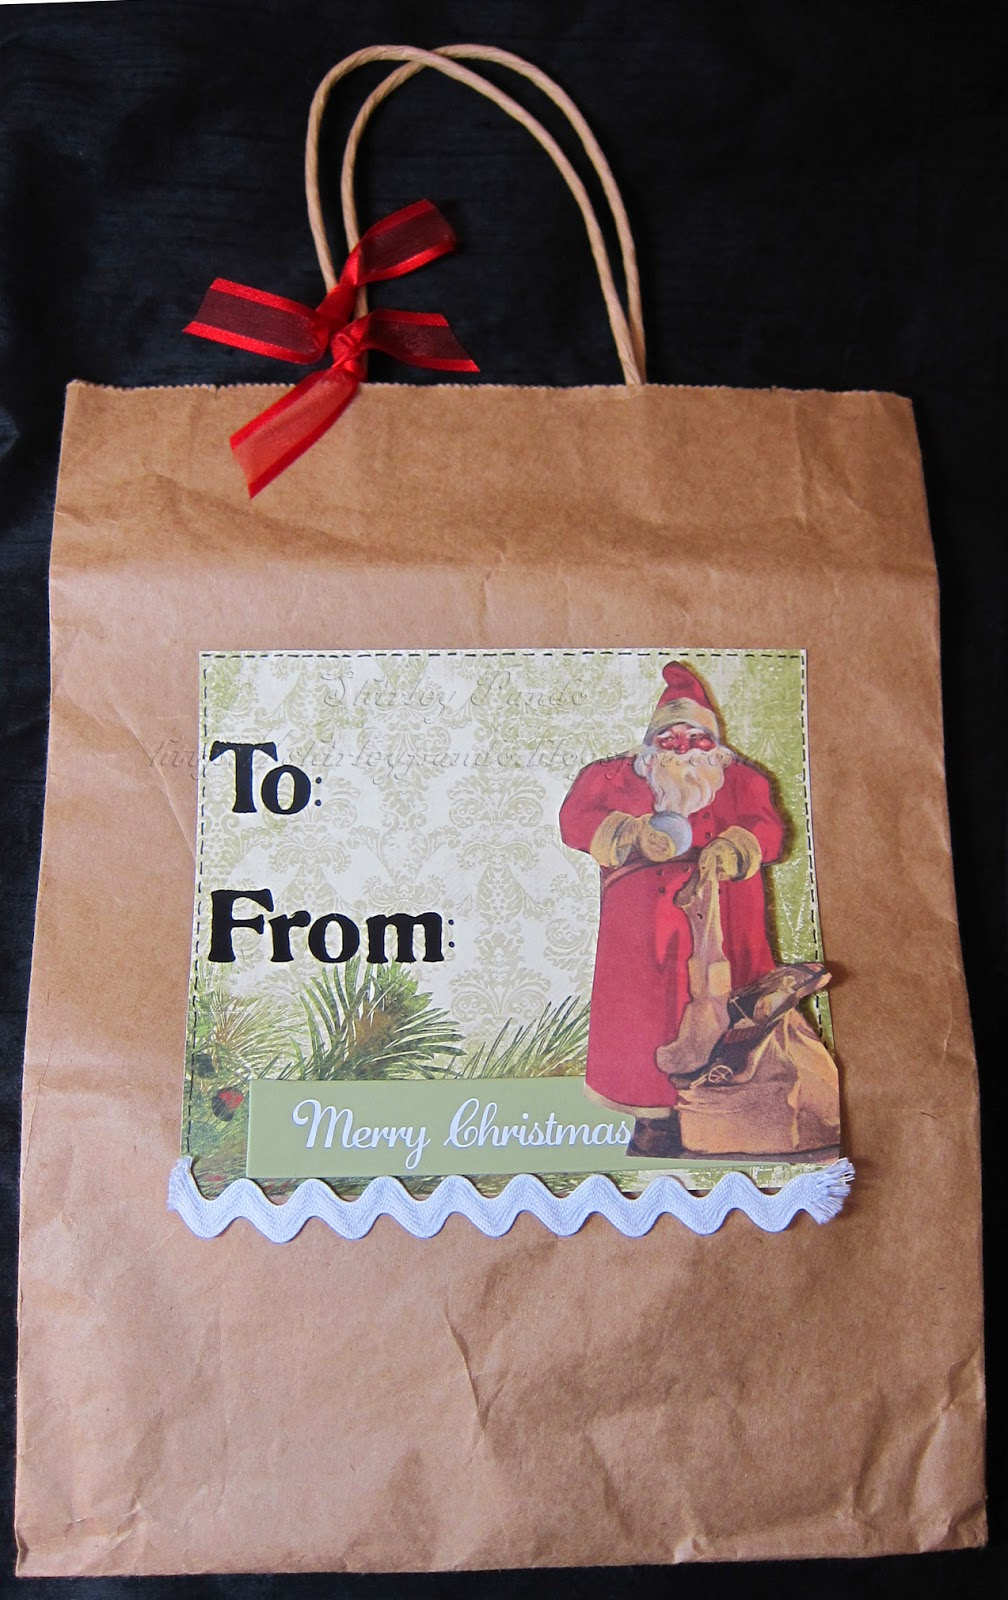 Merry Christmas gift bag